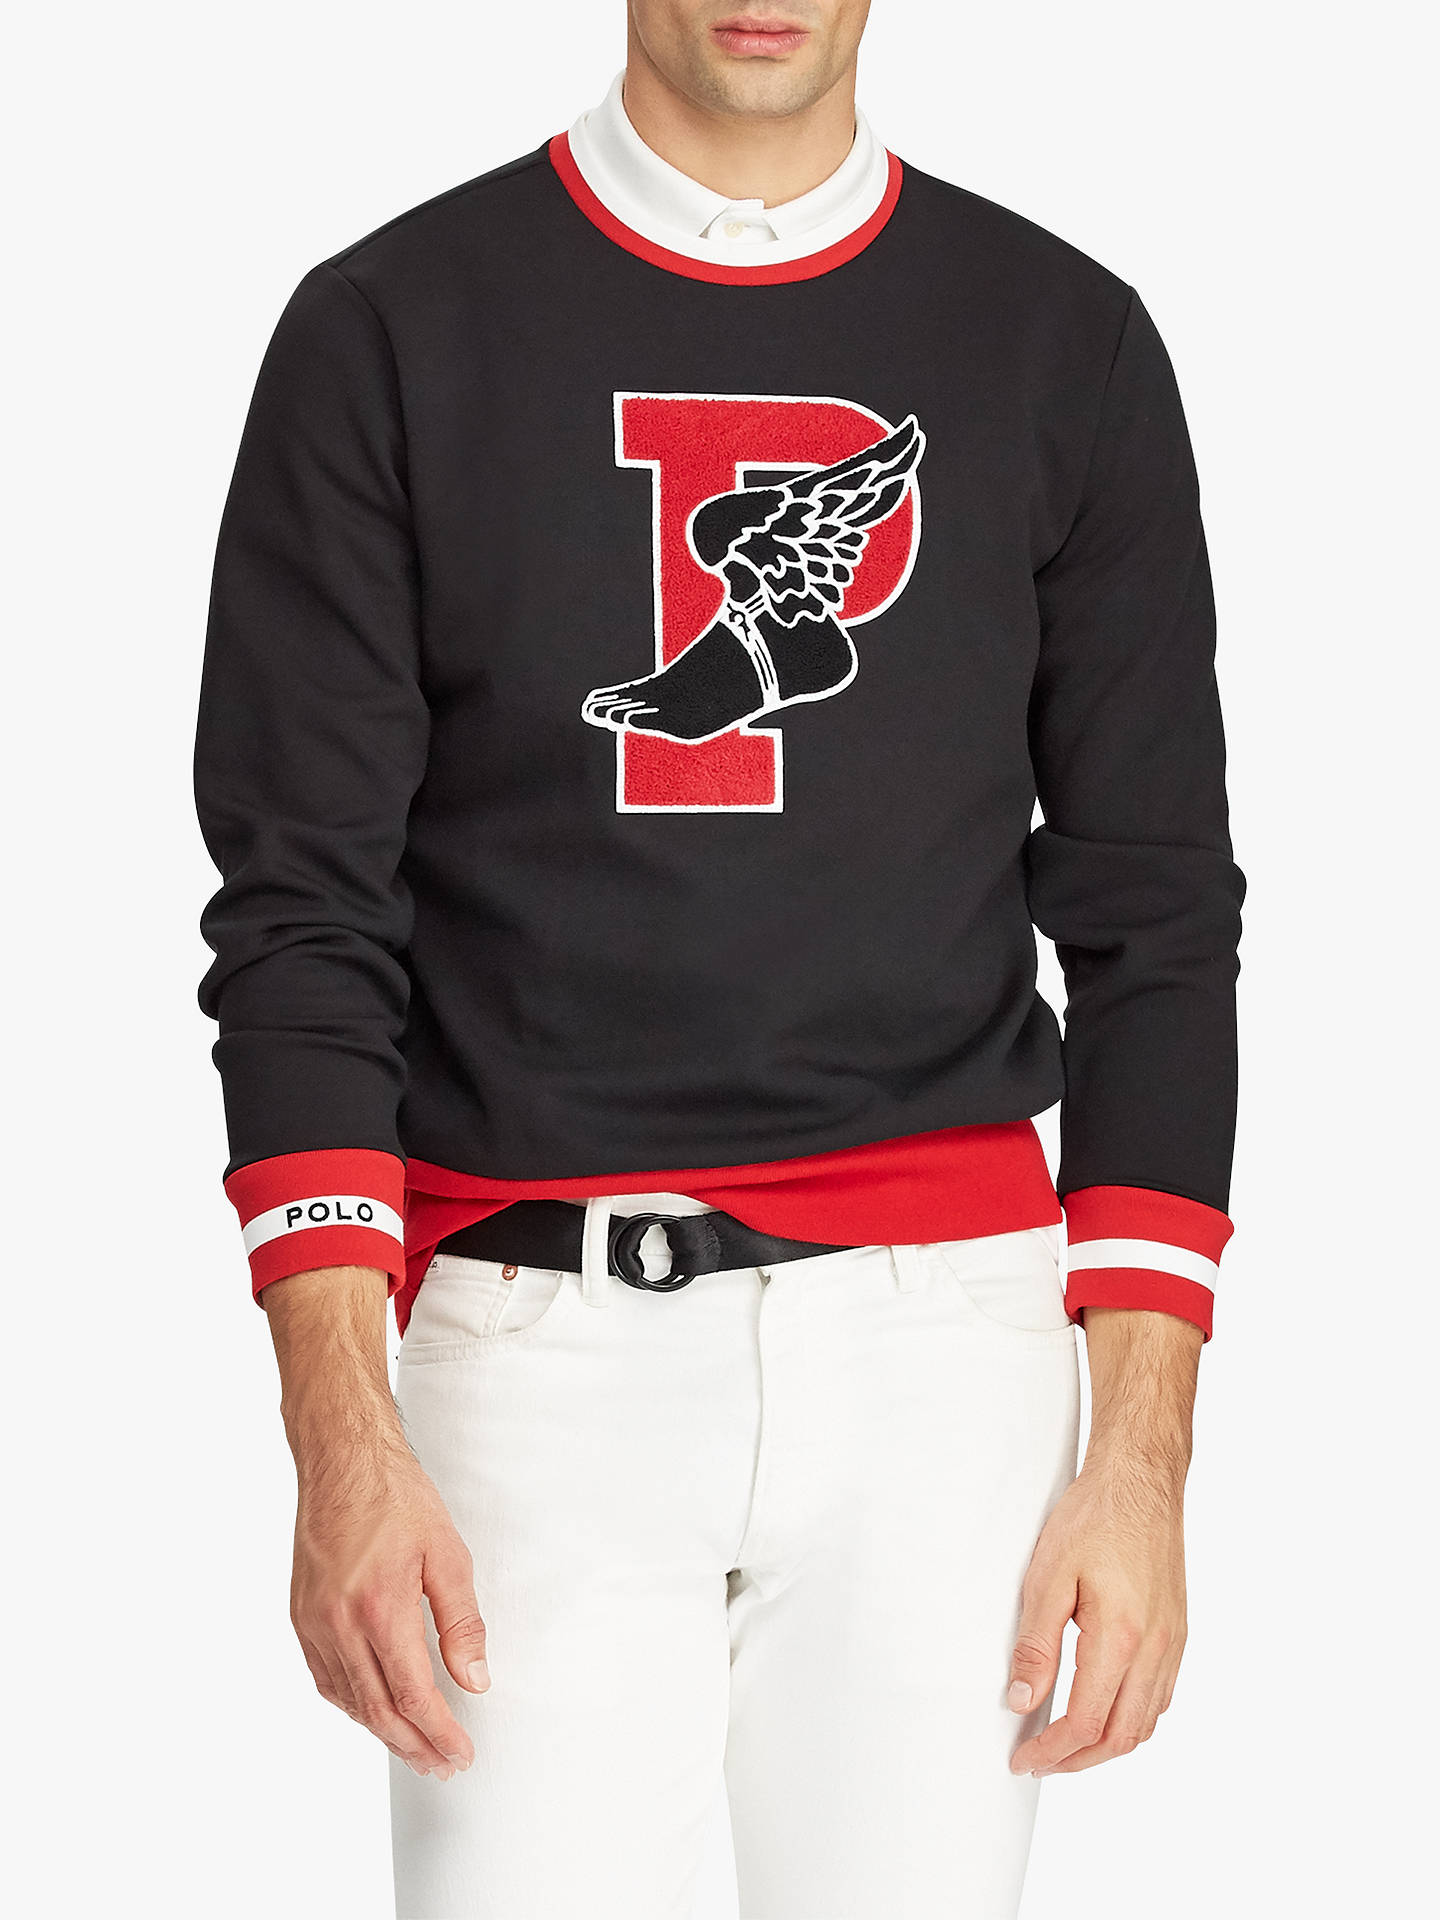 a3492230e Buy Polo Ralph Lauren P-Wing Graphic Sweatshirt